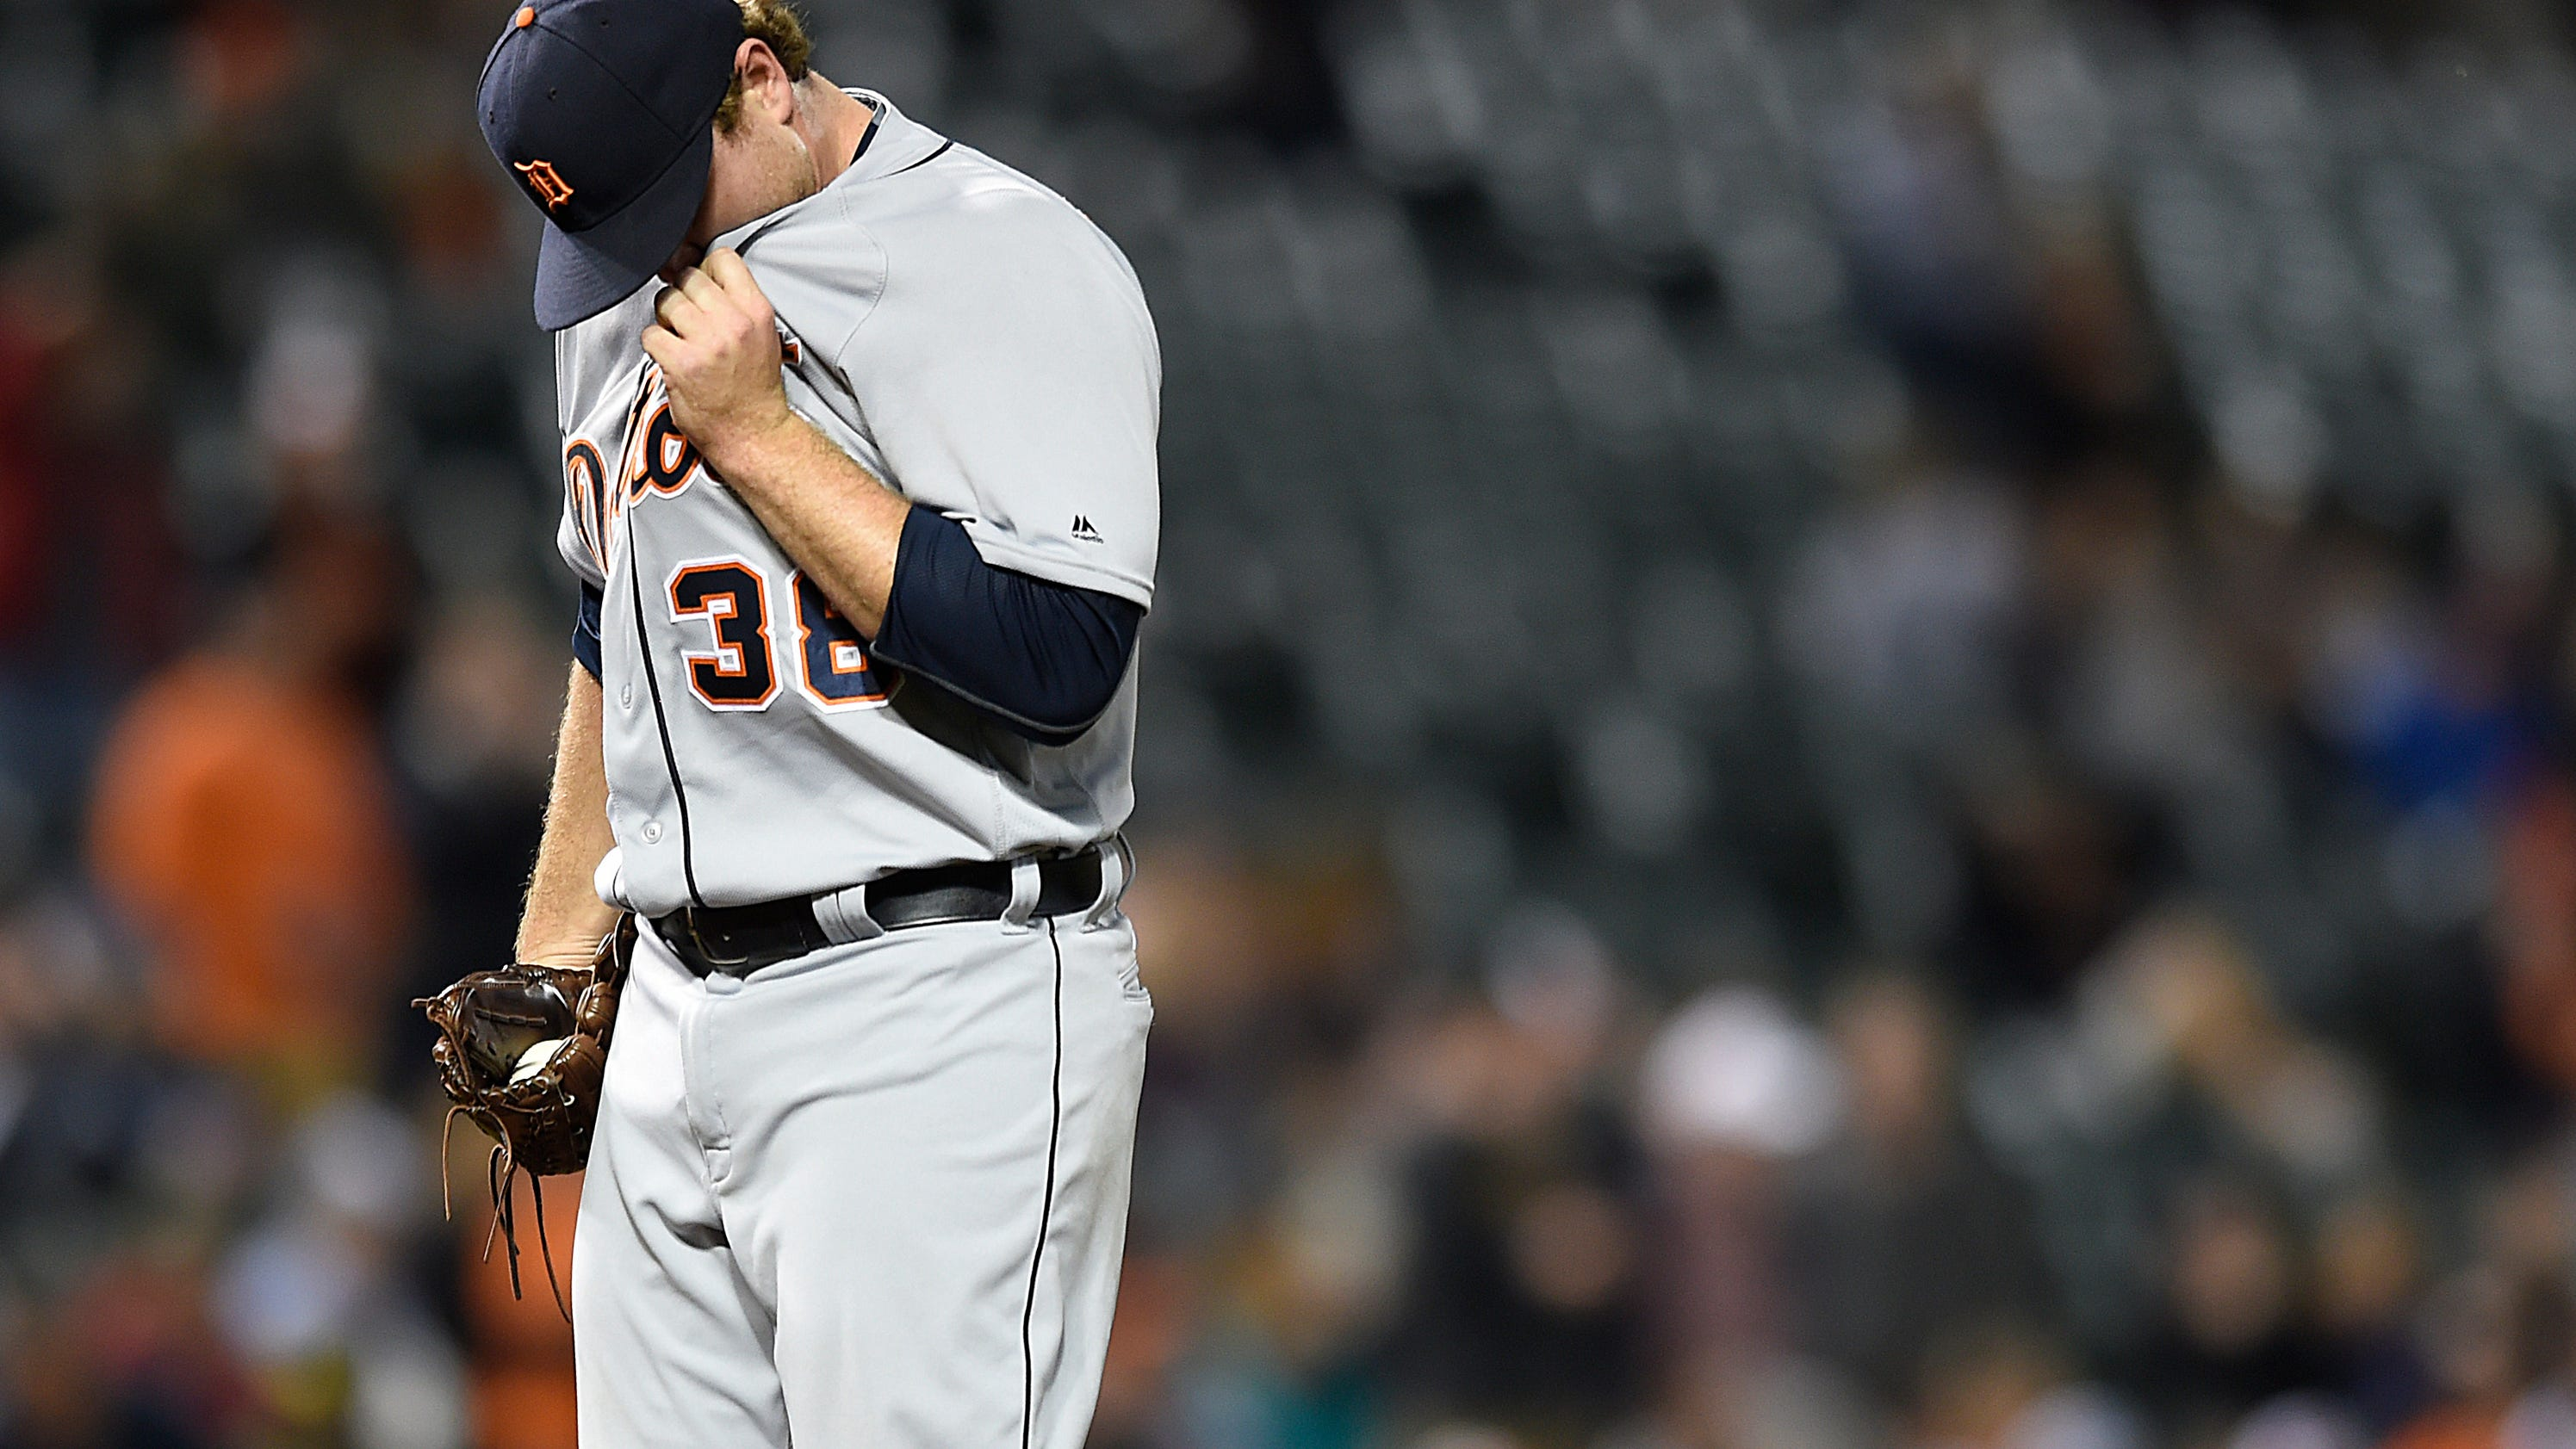 Tigers blow 5-run lead in 7-5 loss to Orioles